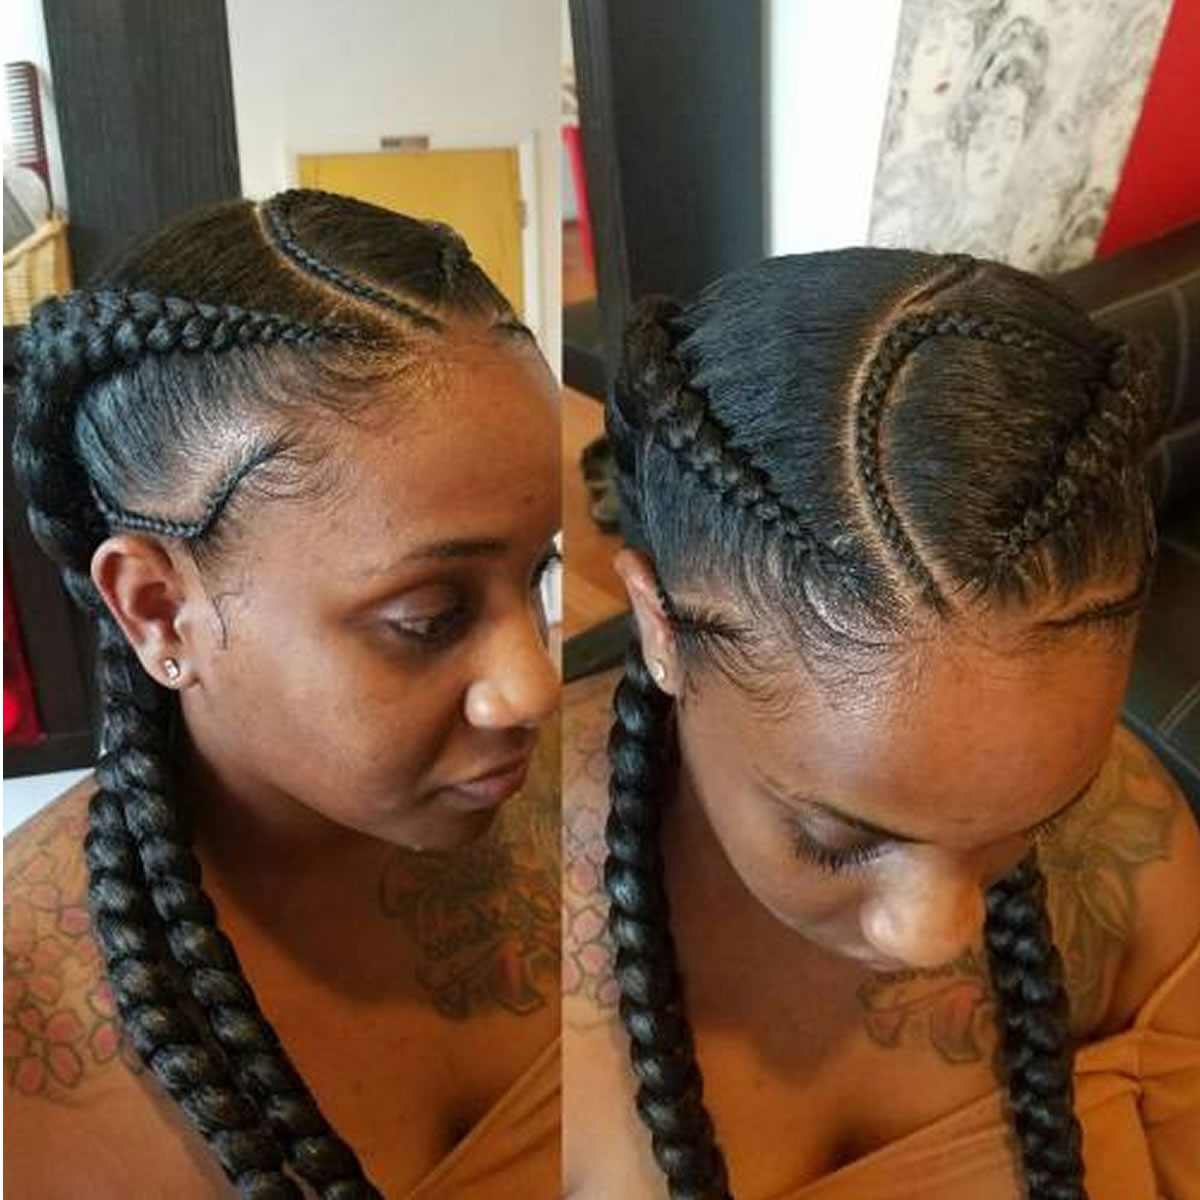 Well Known Curvy Braid Hairstyles And Long Tails Pertaining To Curvy Braids And Long Tails – Hairstyles (Gallery 1 of 20)